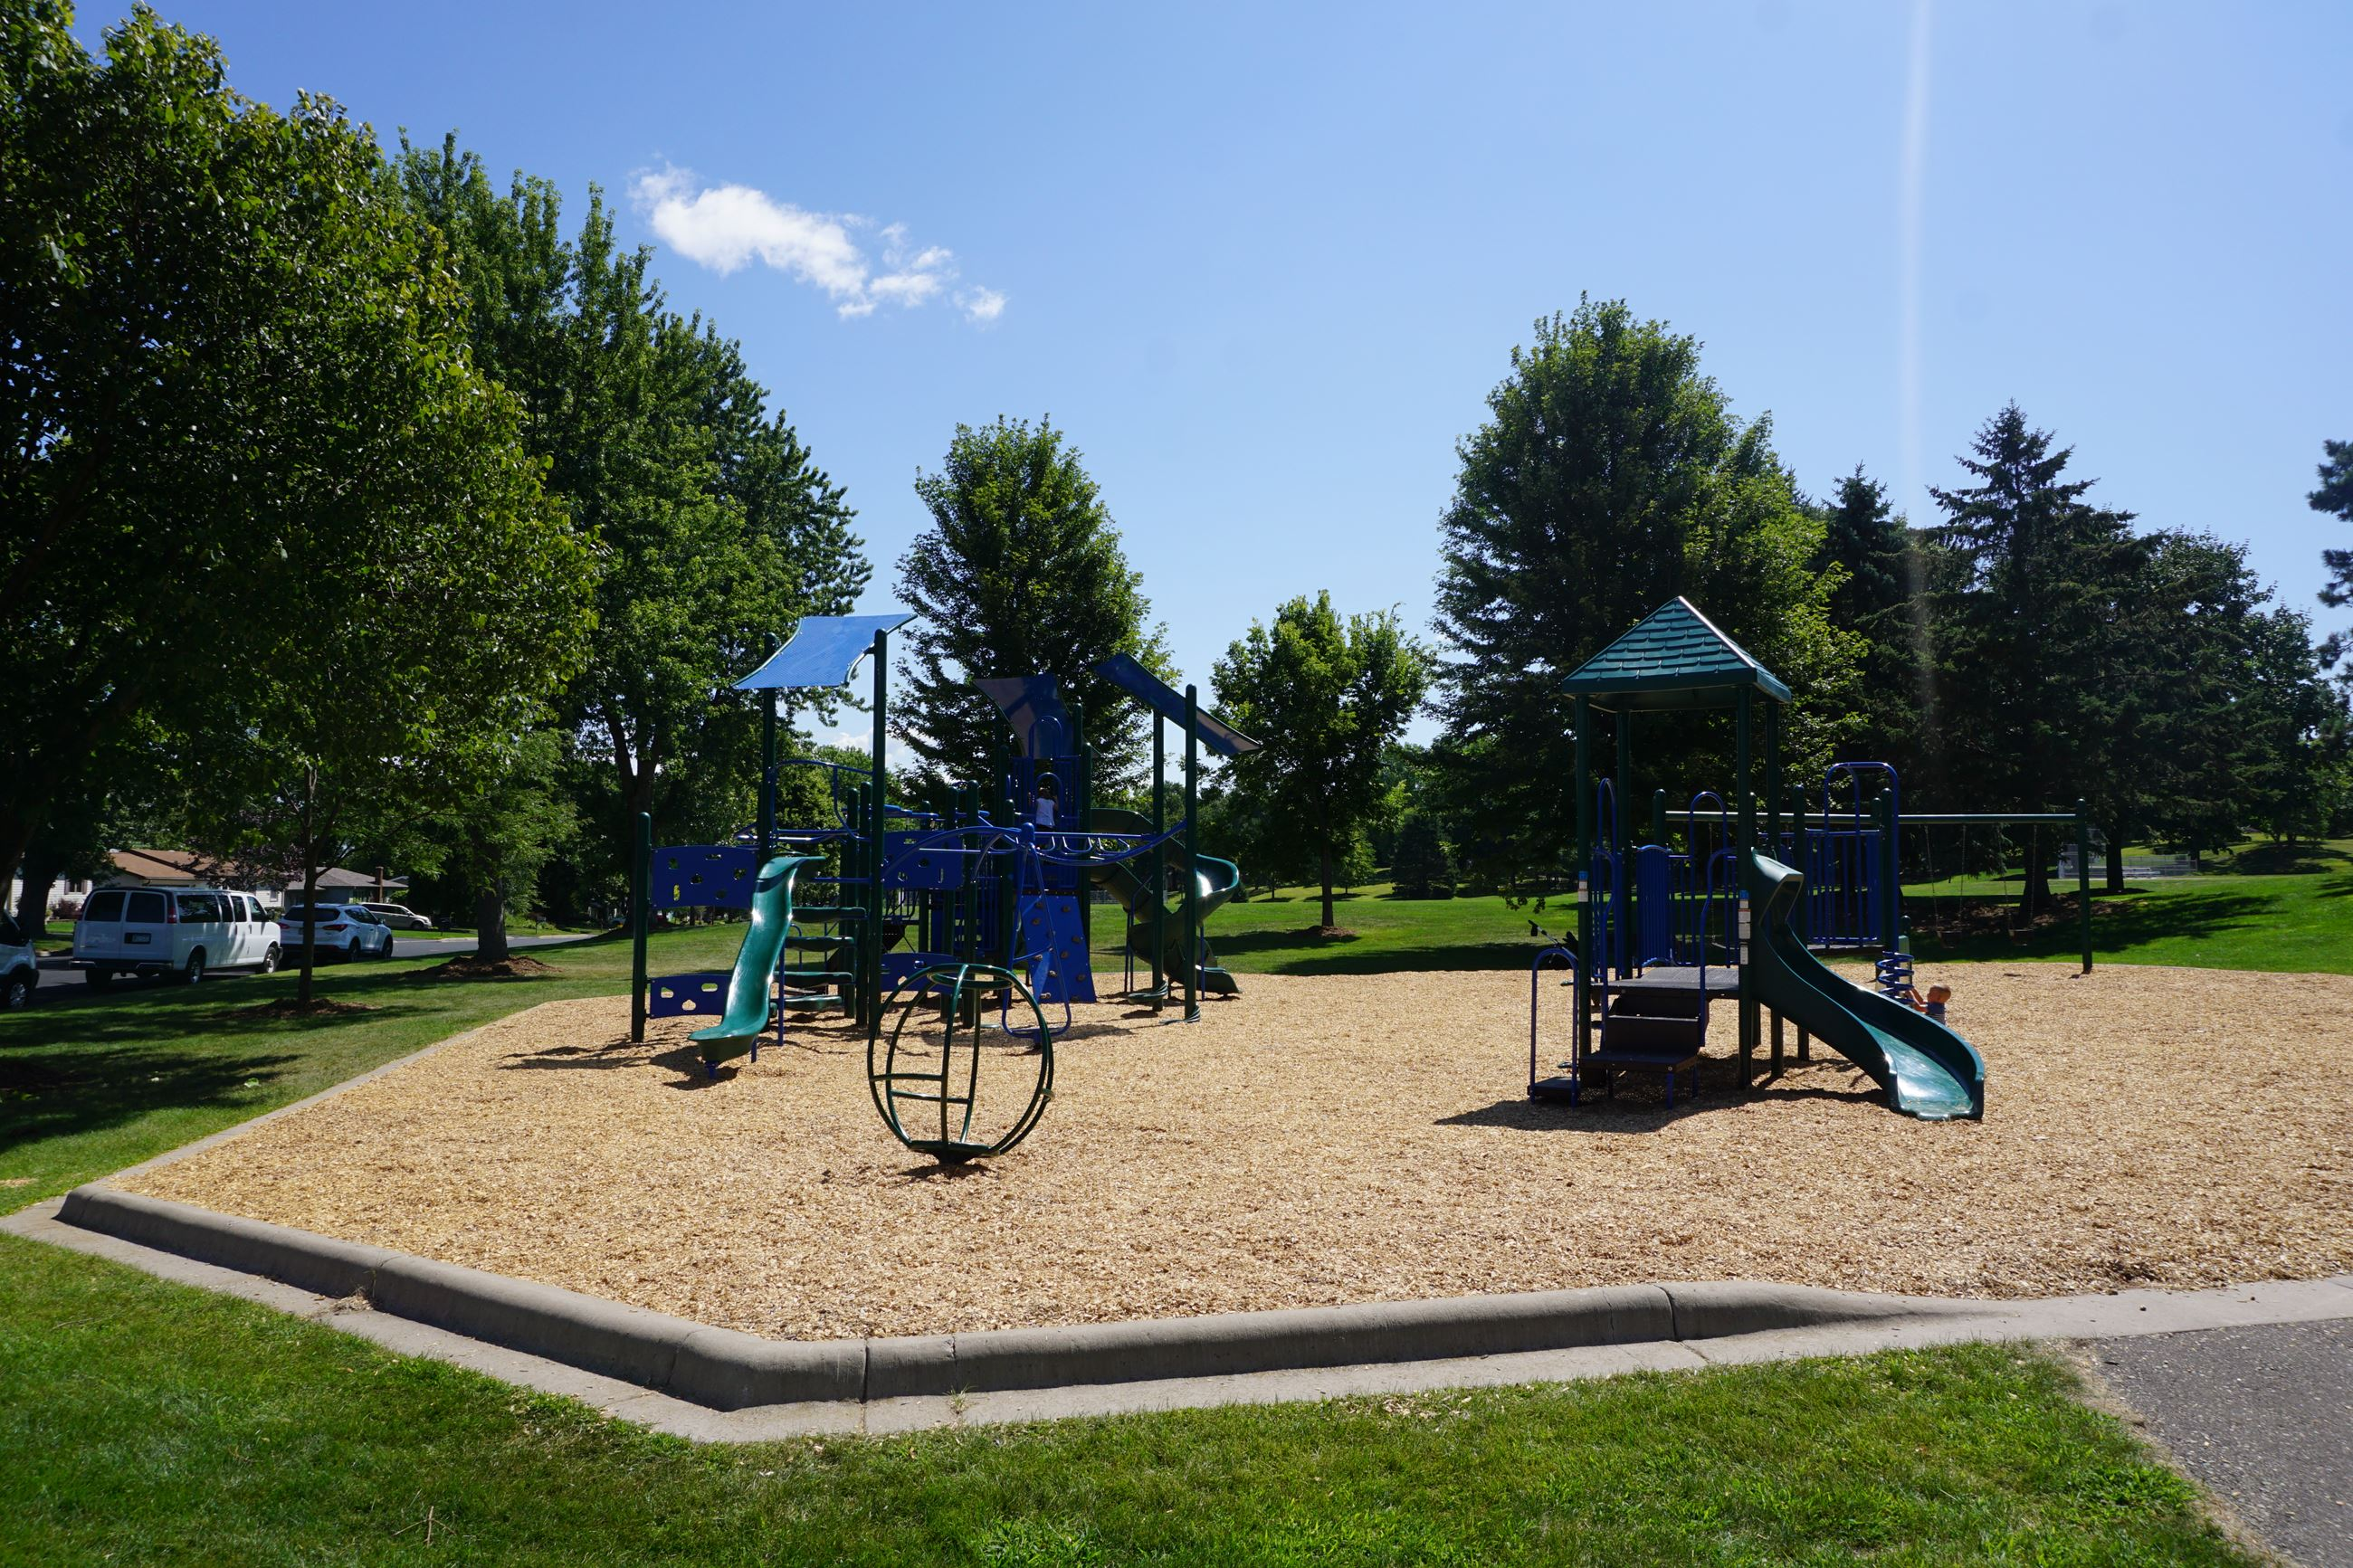 oakwood playground